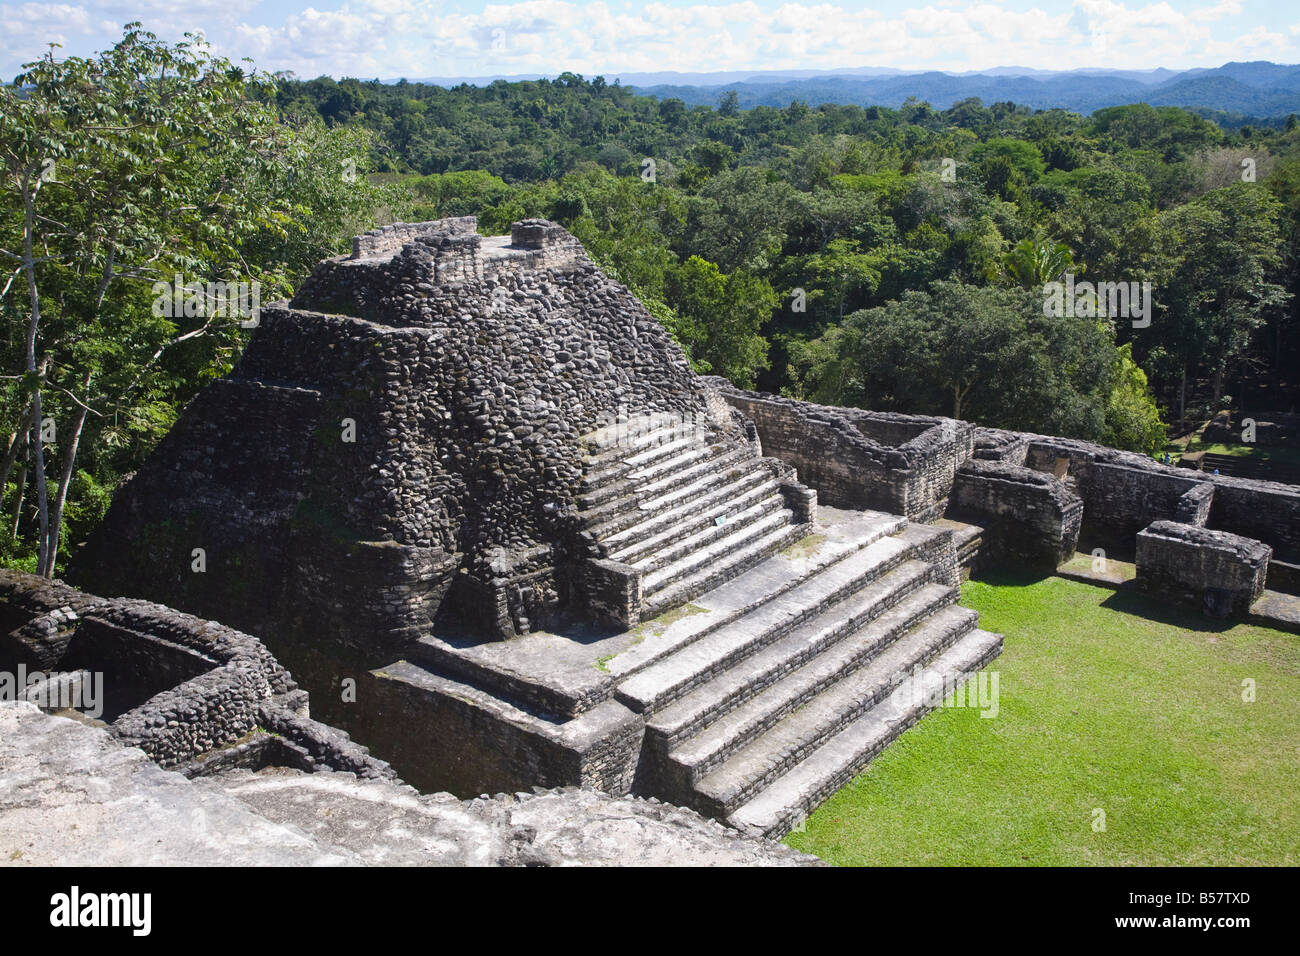 Plaza B temple, Mayan ruins, Caracol, Belize, Central America - Stock Image